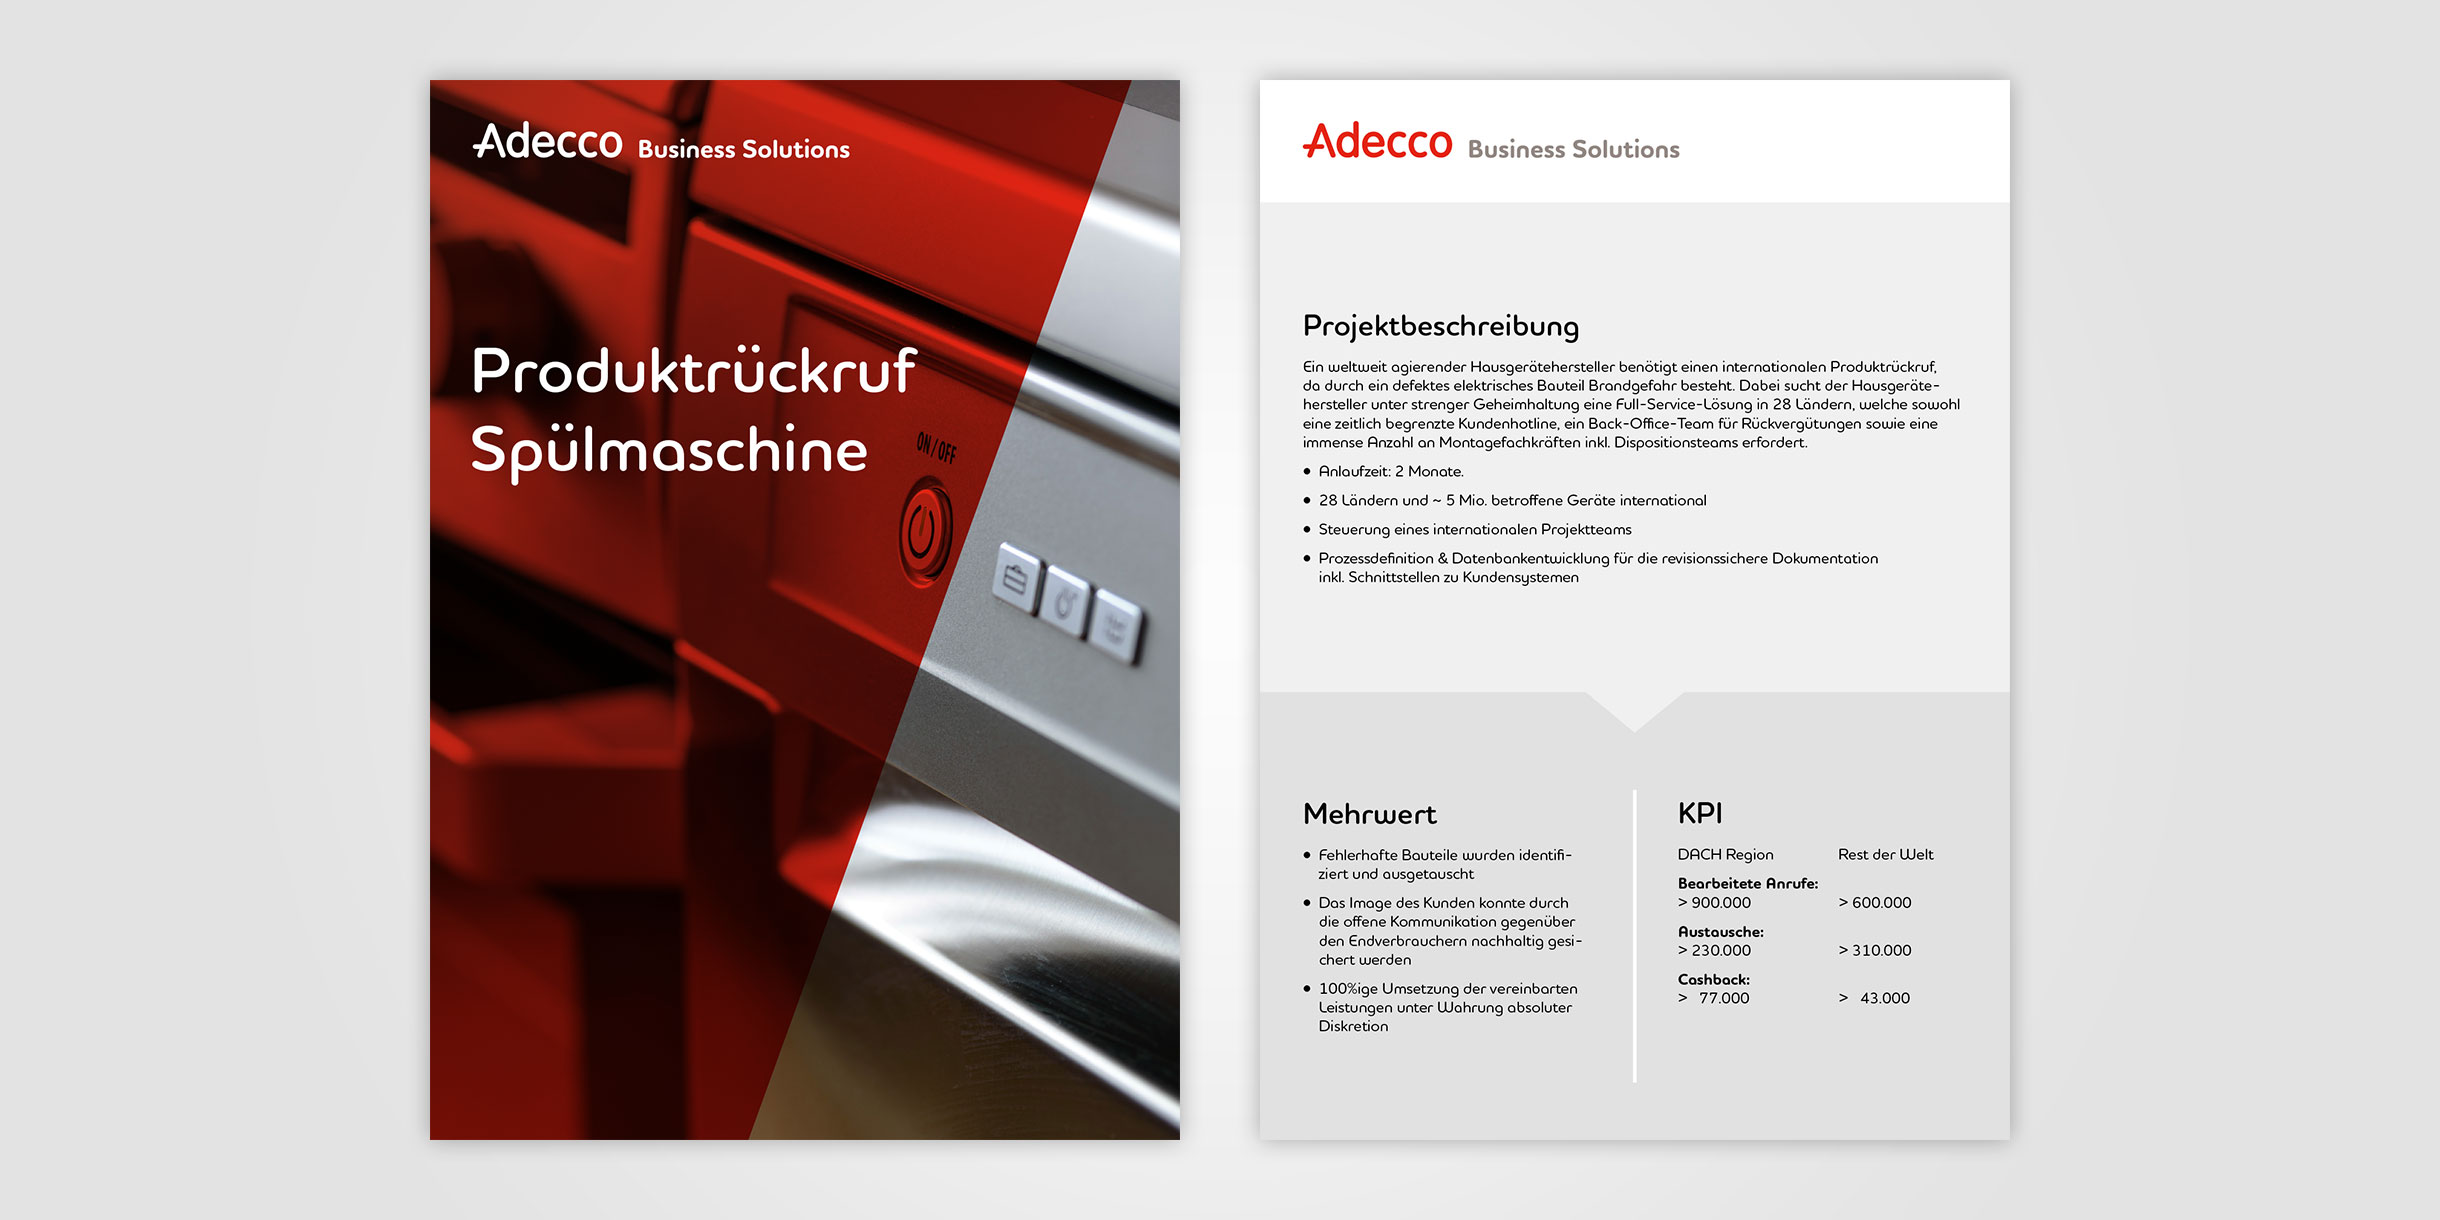 Adecco Business Solutions - Case Study